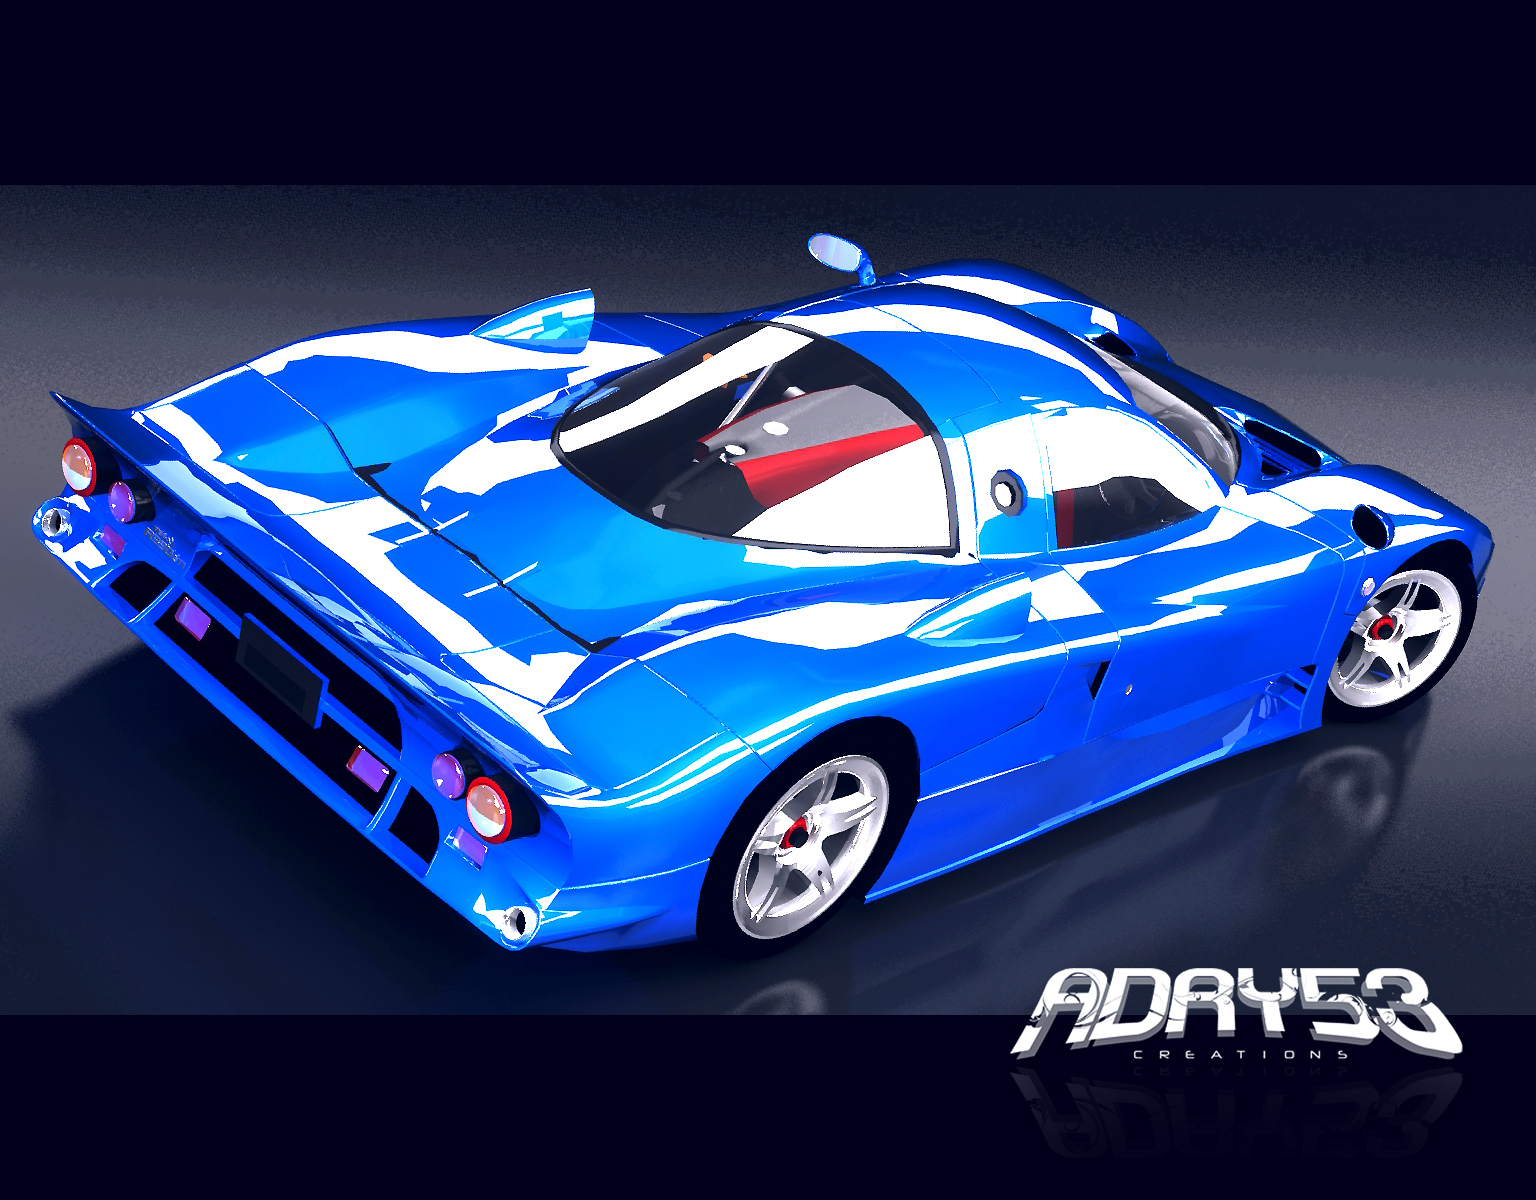 1998 Nissan R390 GT1 by Adry53 on DeviantArt